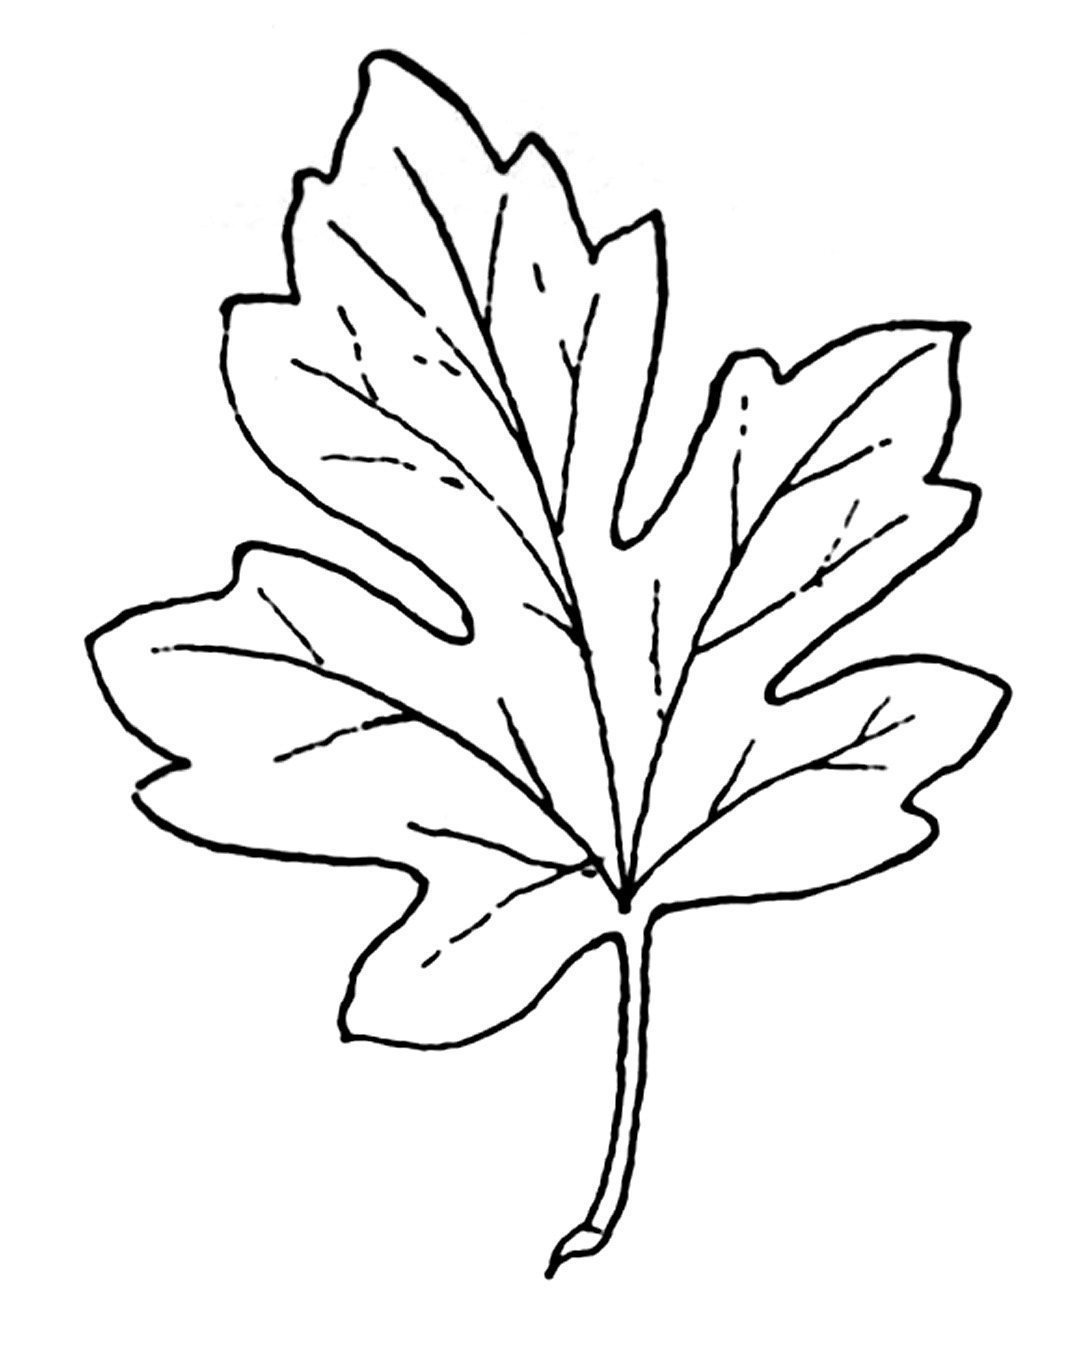 1067x1350 Collection Of Autumn Leaf Drawing Black And White High